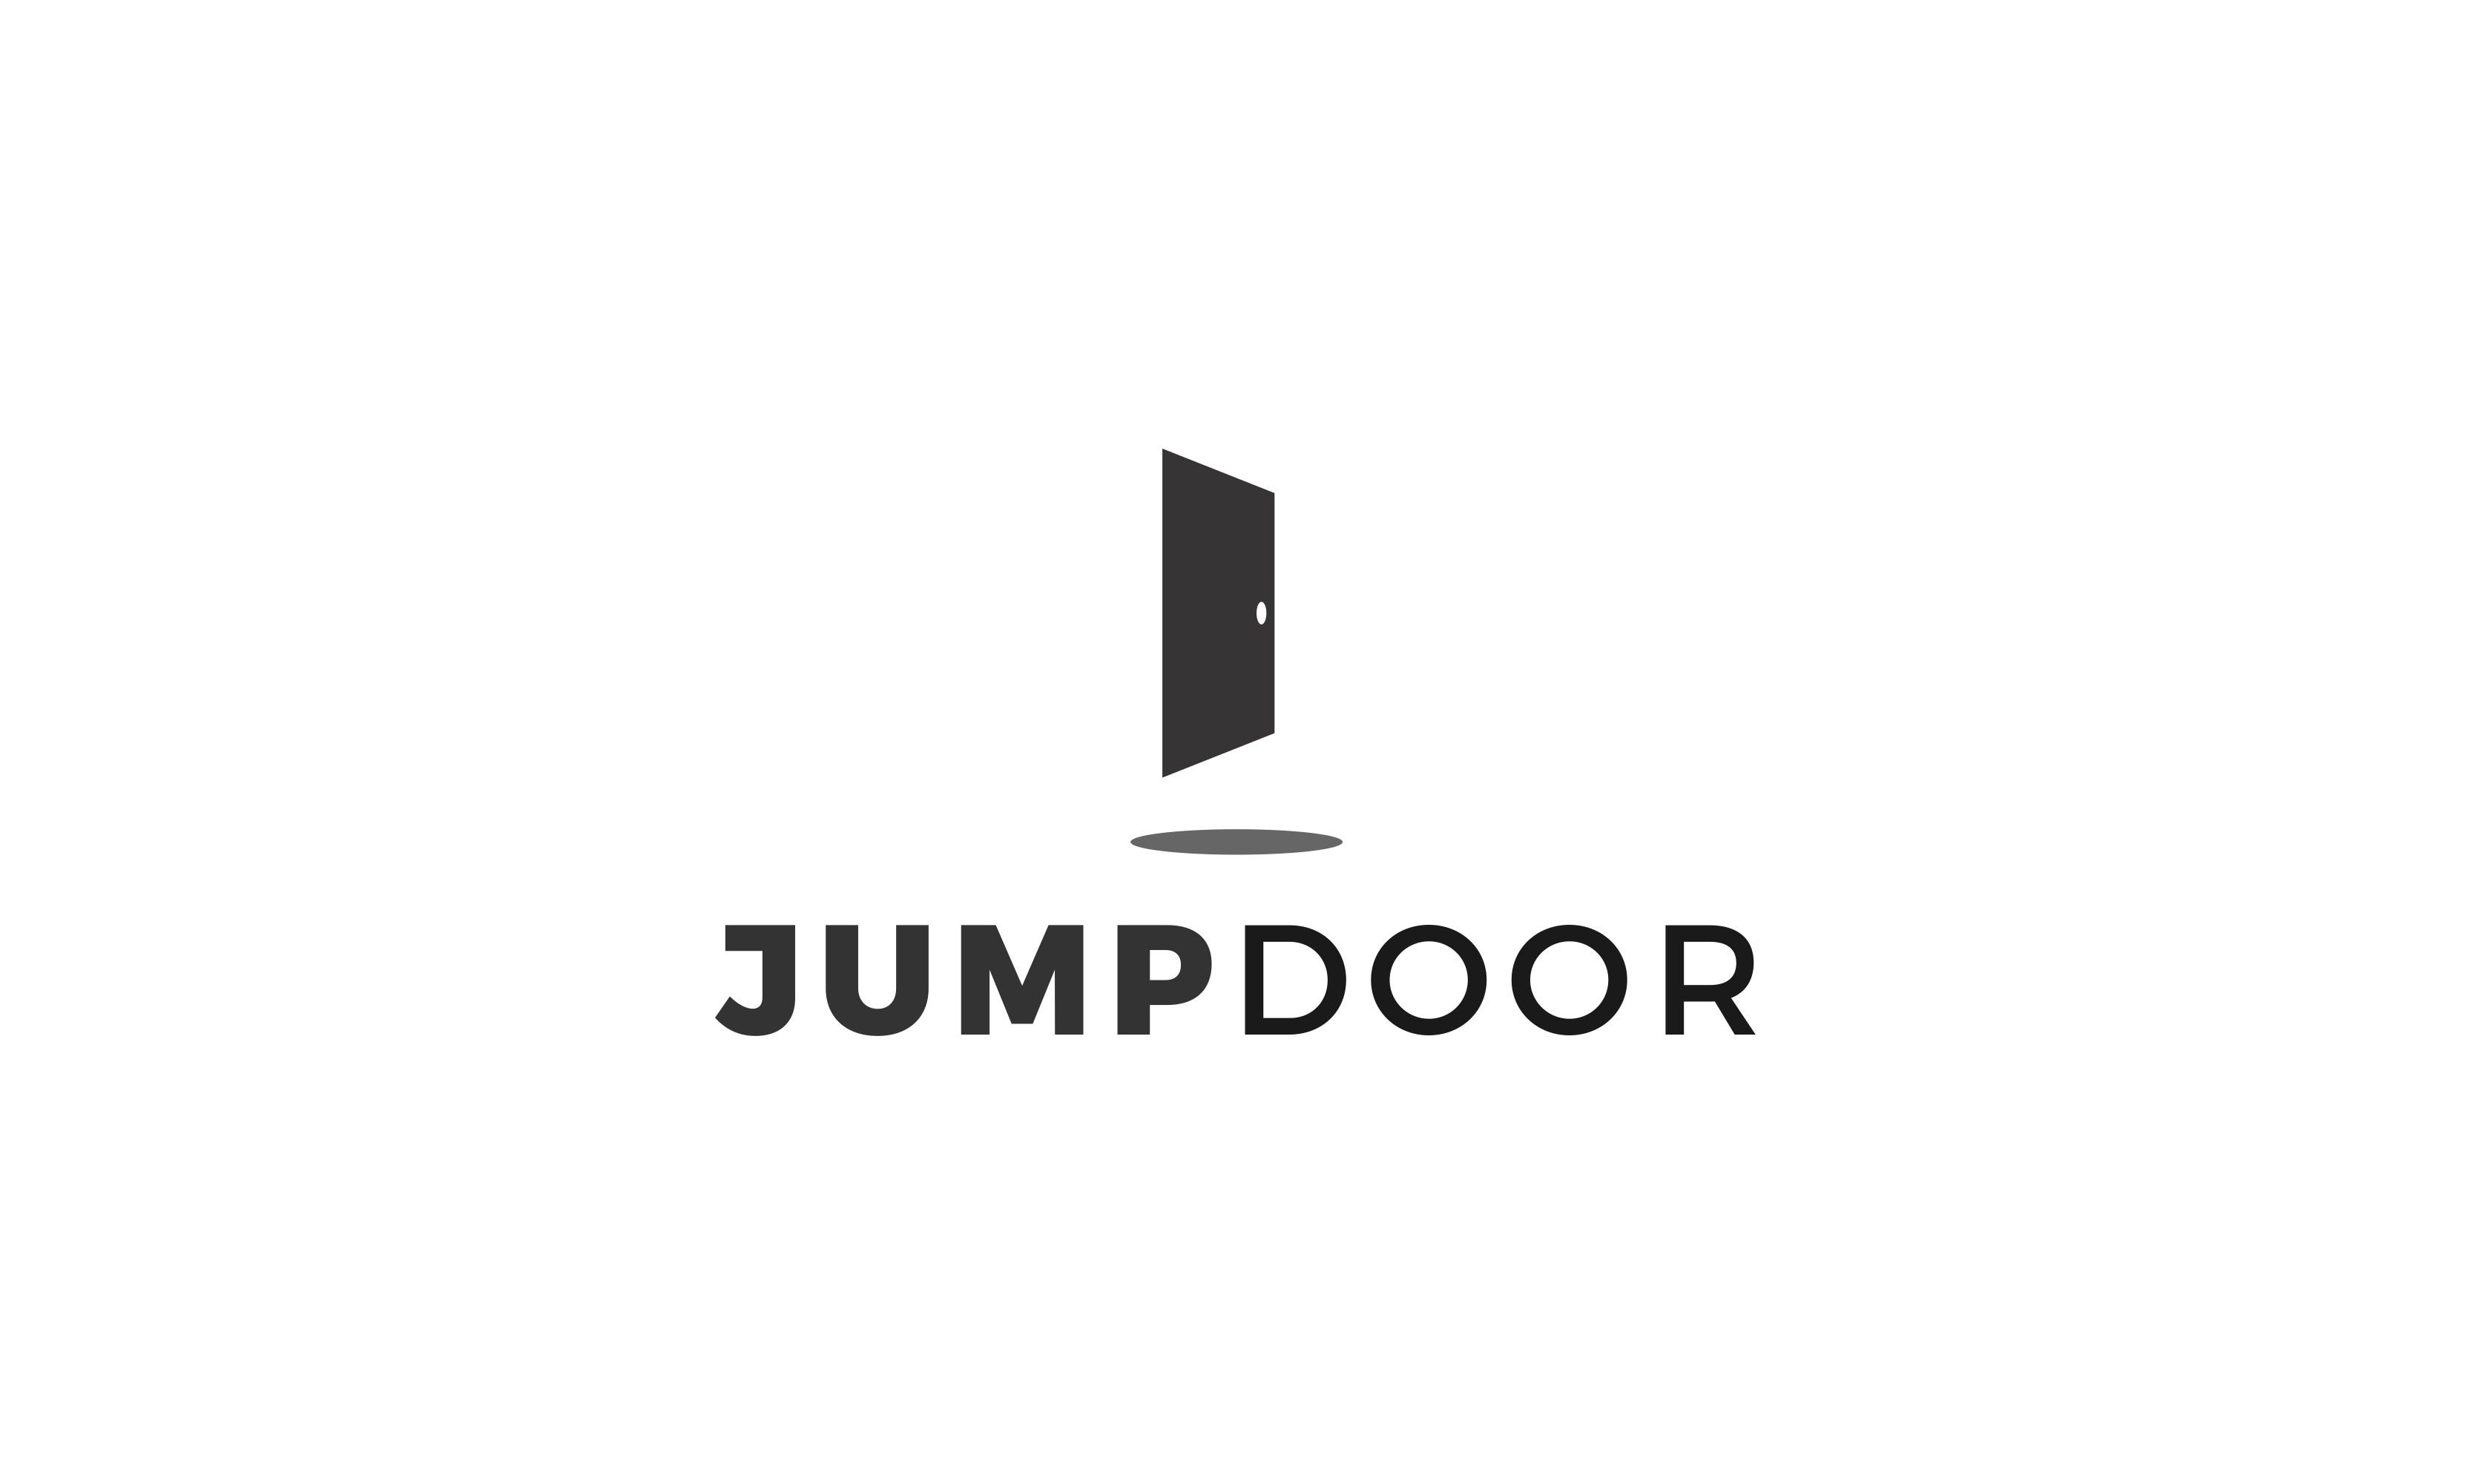 Jumpdoor